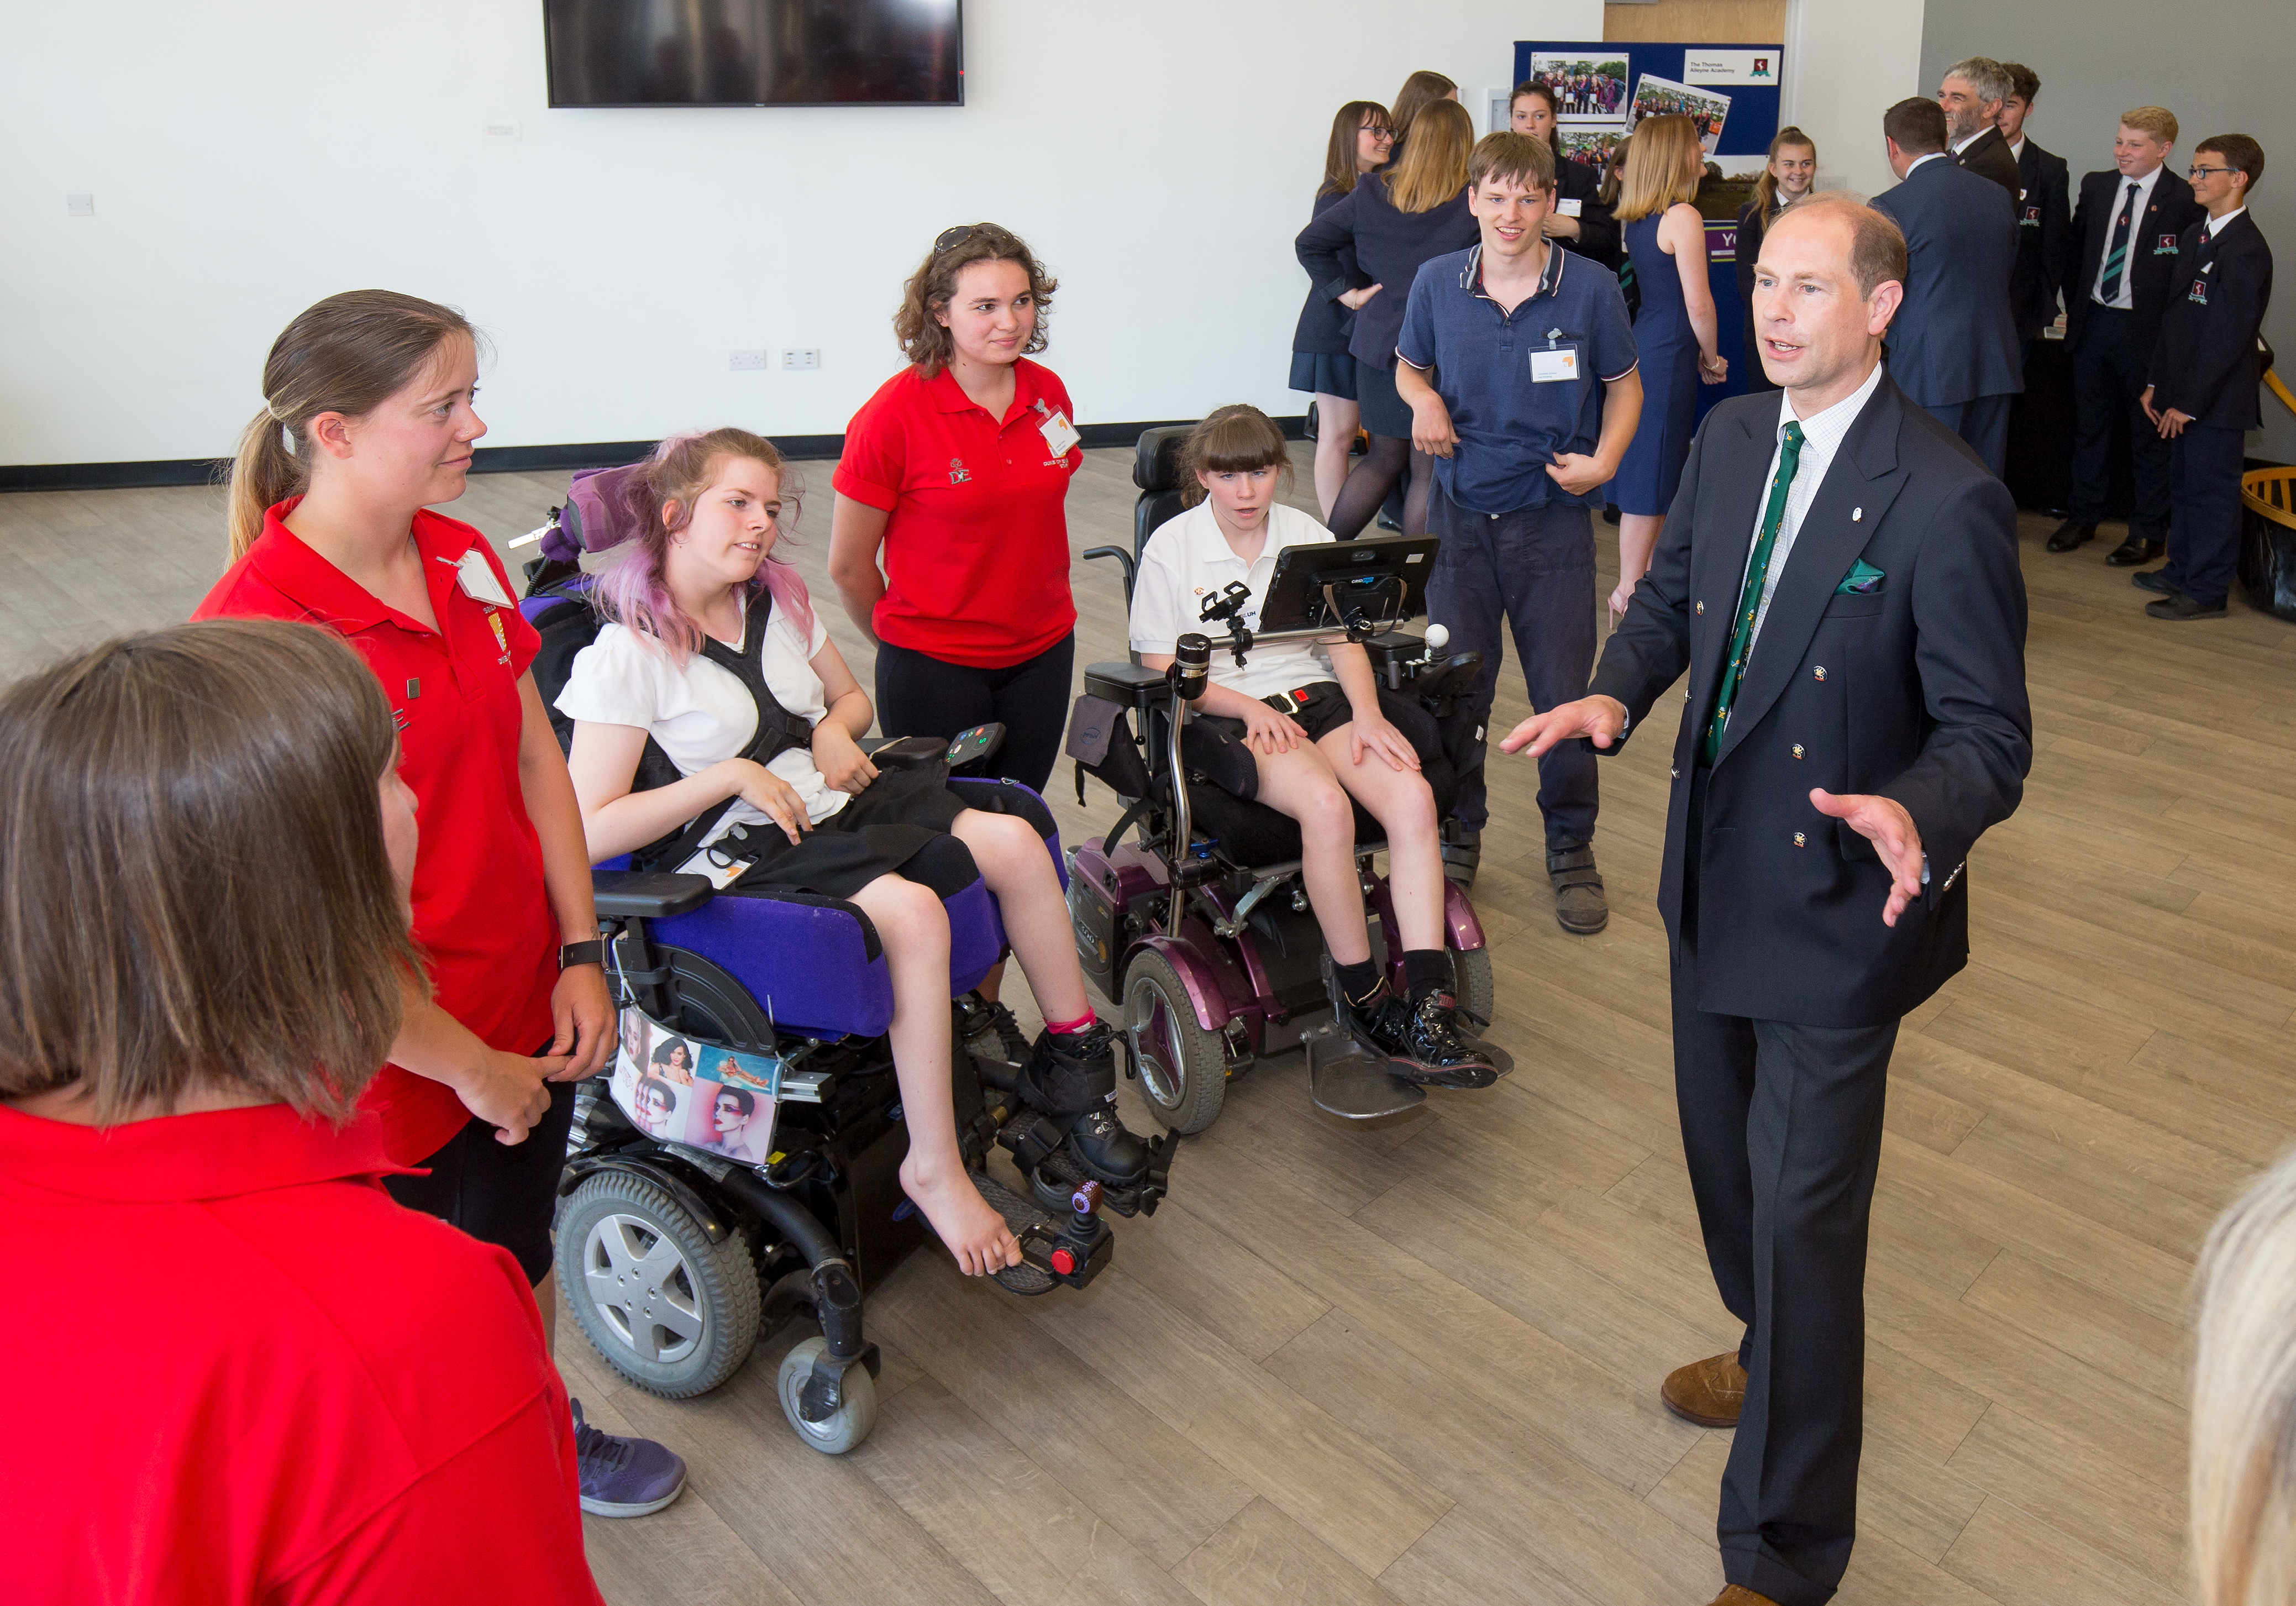 HRH The Earl of Wessex meets young people taking part in The Duke of Edinburgh's Award in Hertfordshire